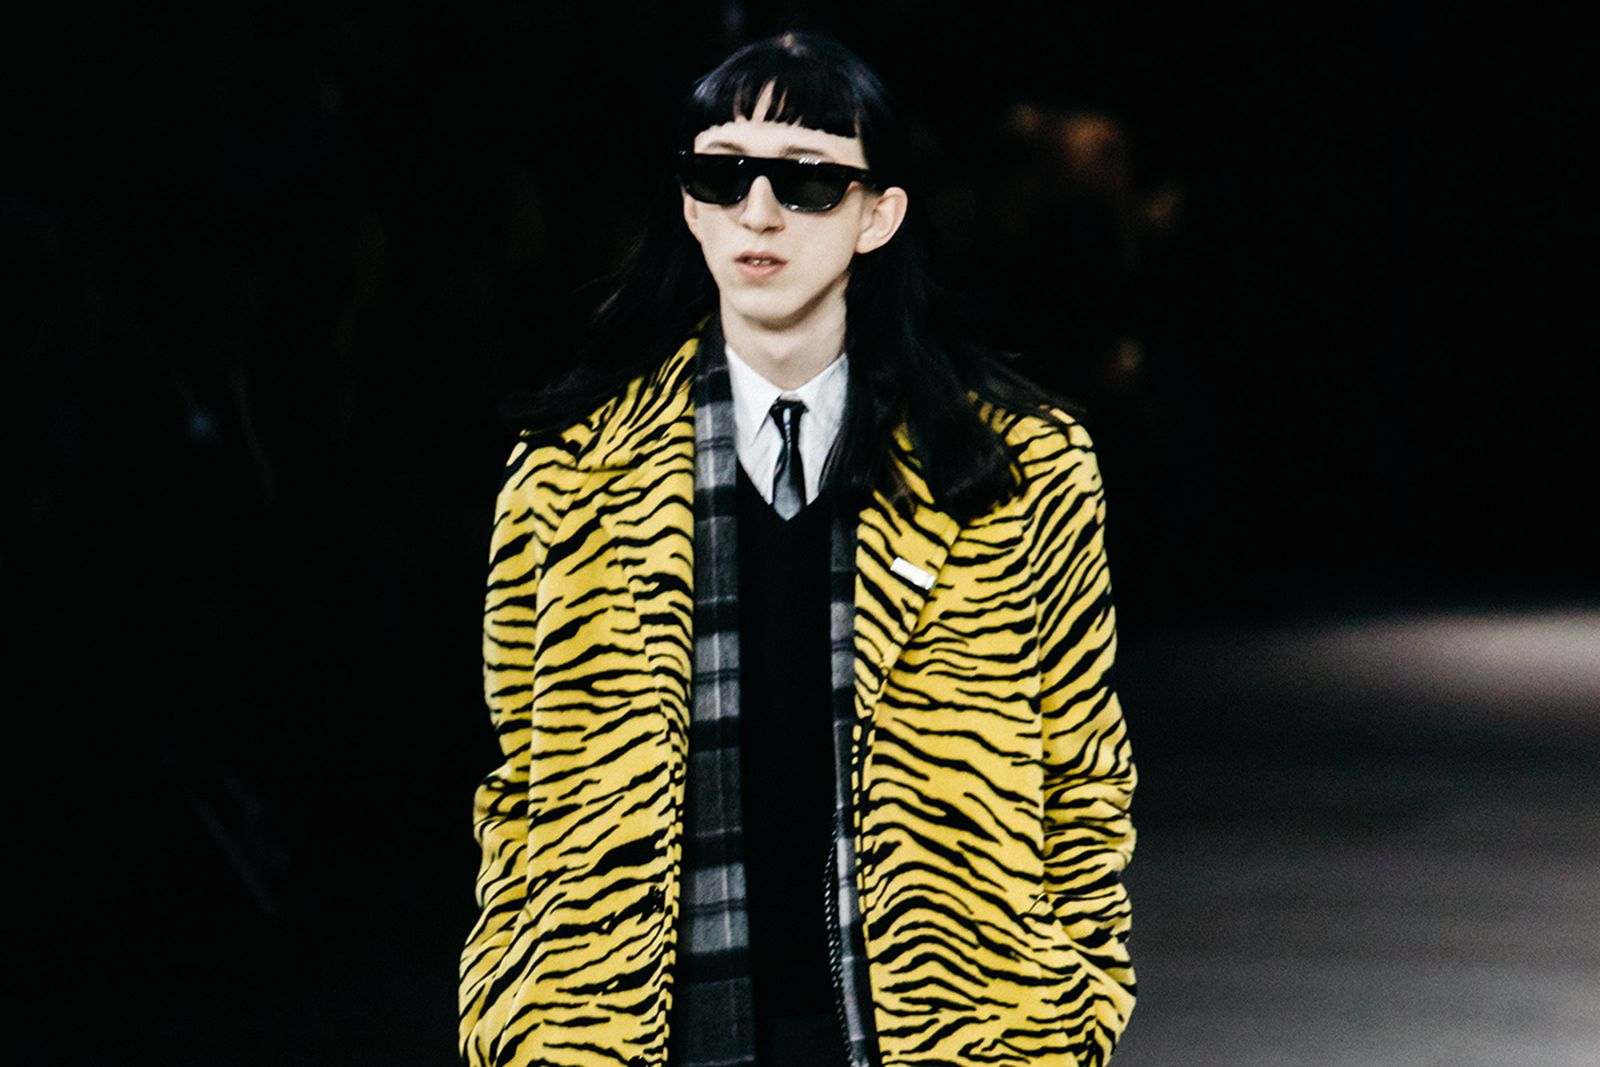 marc-jacobs-really-loves-his-celine-tiger-coat-so-do-we-main